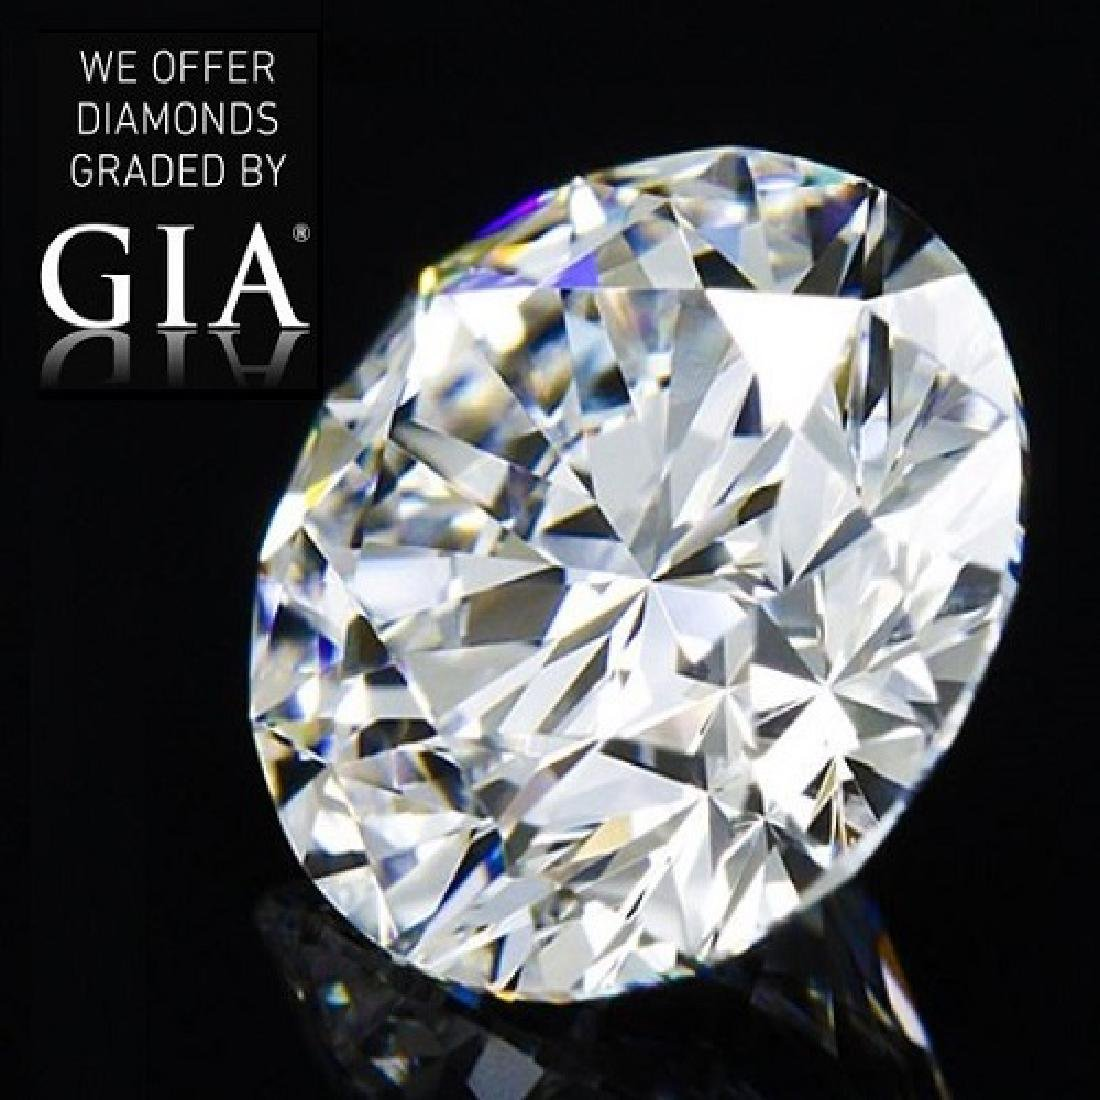 5.64 ct, Color D/FL, Round cut Diamond